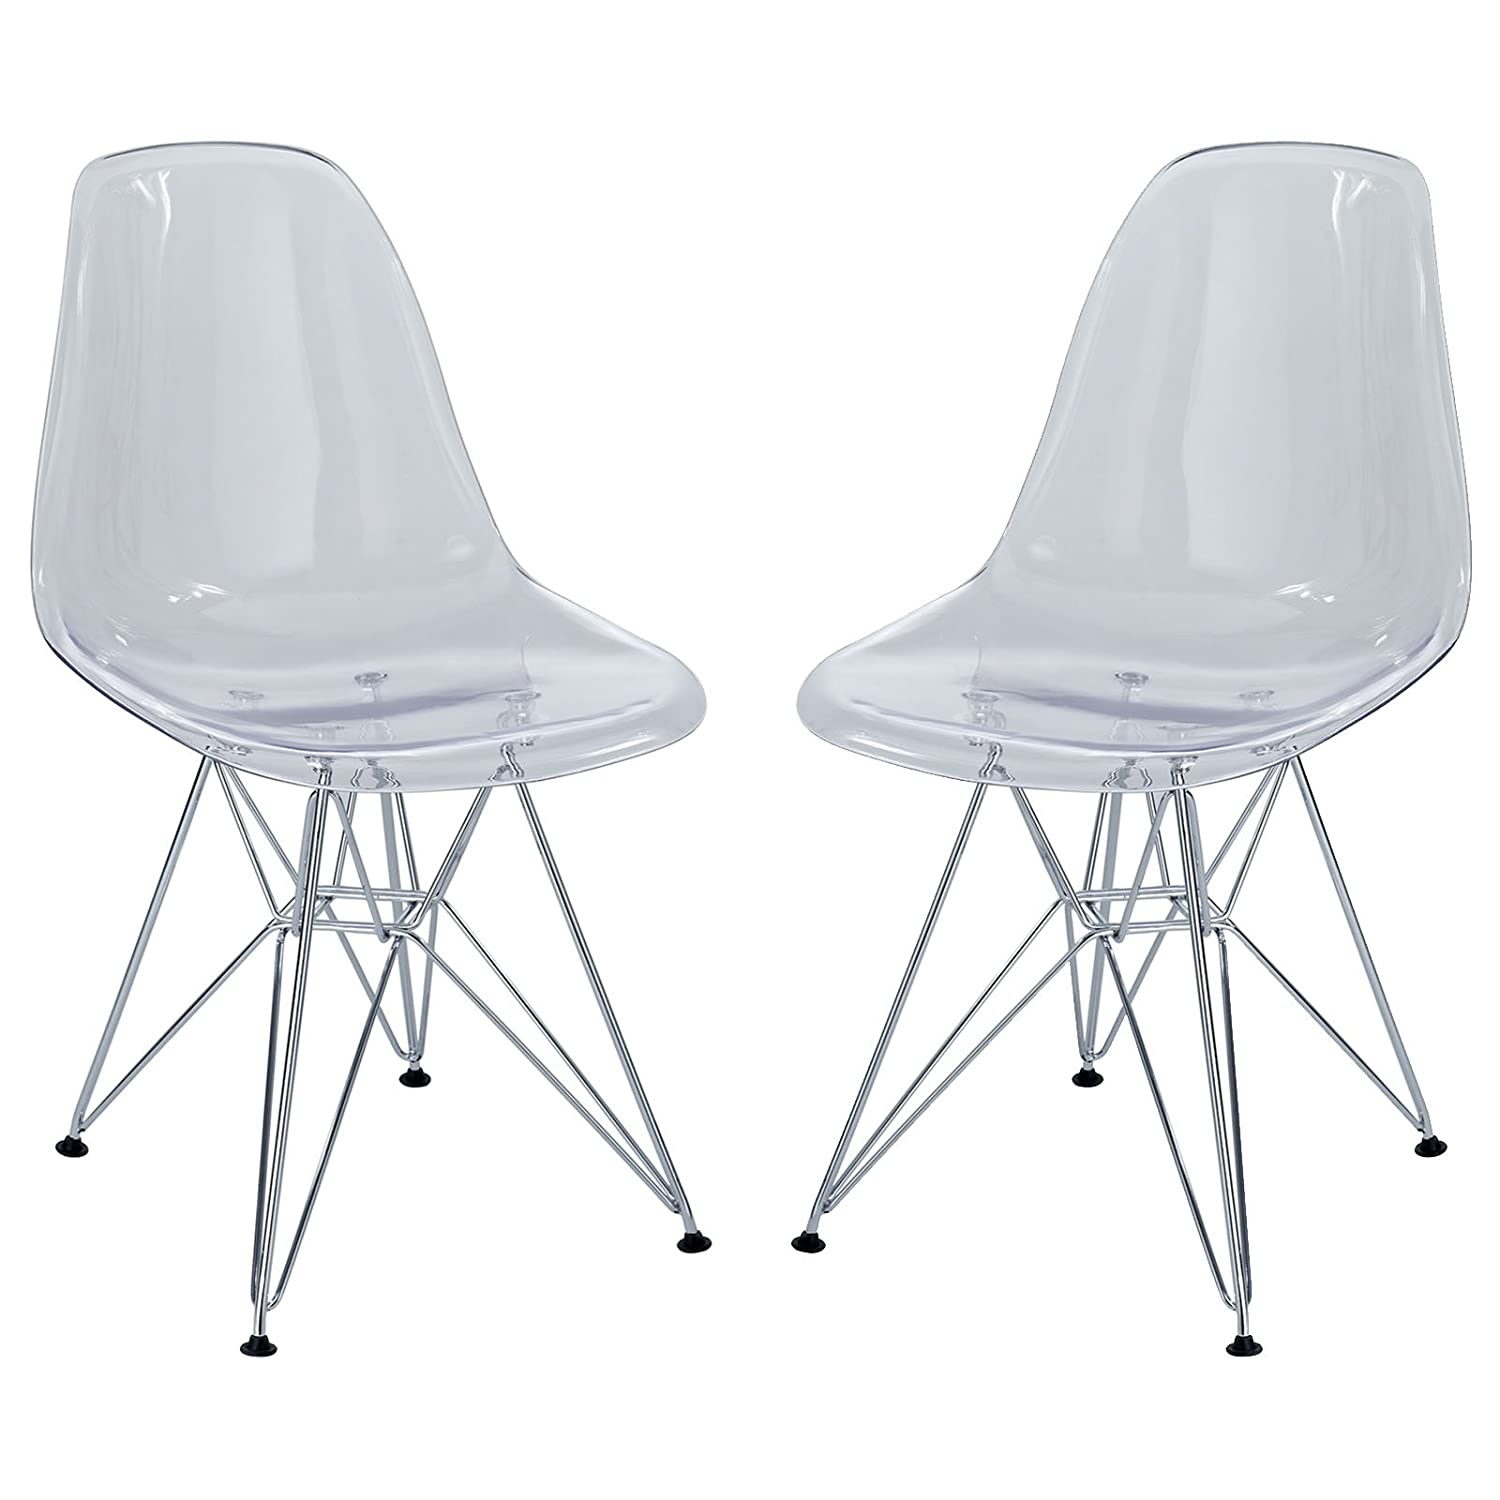 Chair wire chairs missing cover - Chair Wire Chairs Missing Cover 52